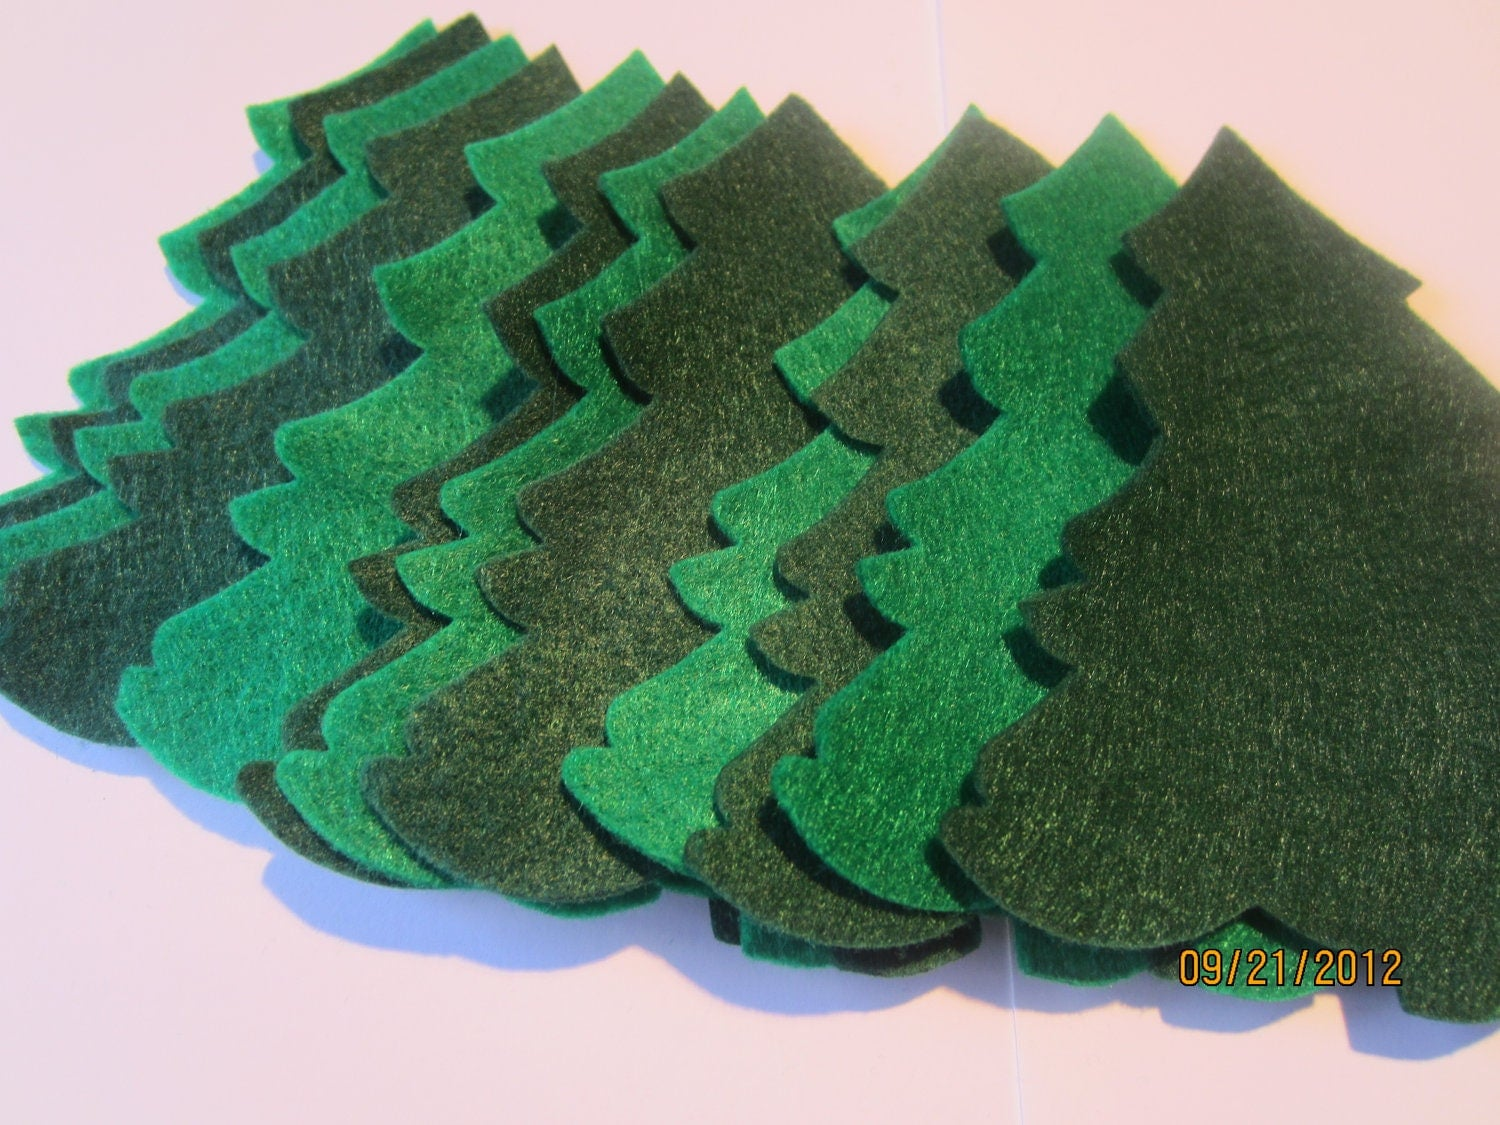 Diy Christmas Decorations Felt : Diy felt christmas trees ornaments evergreen die